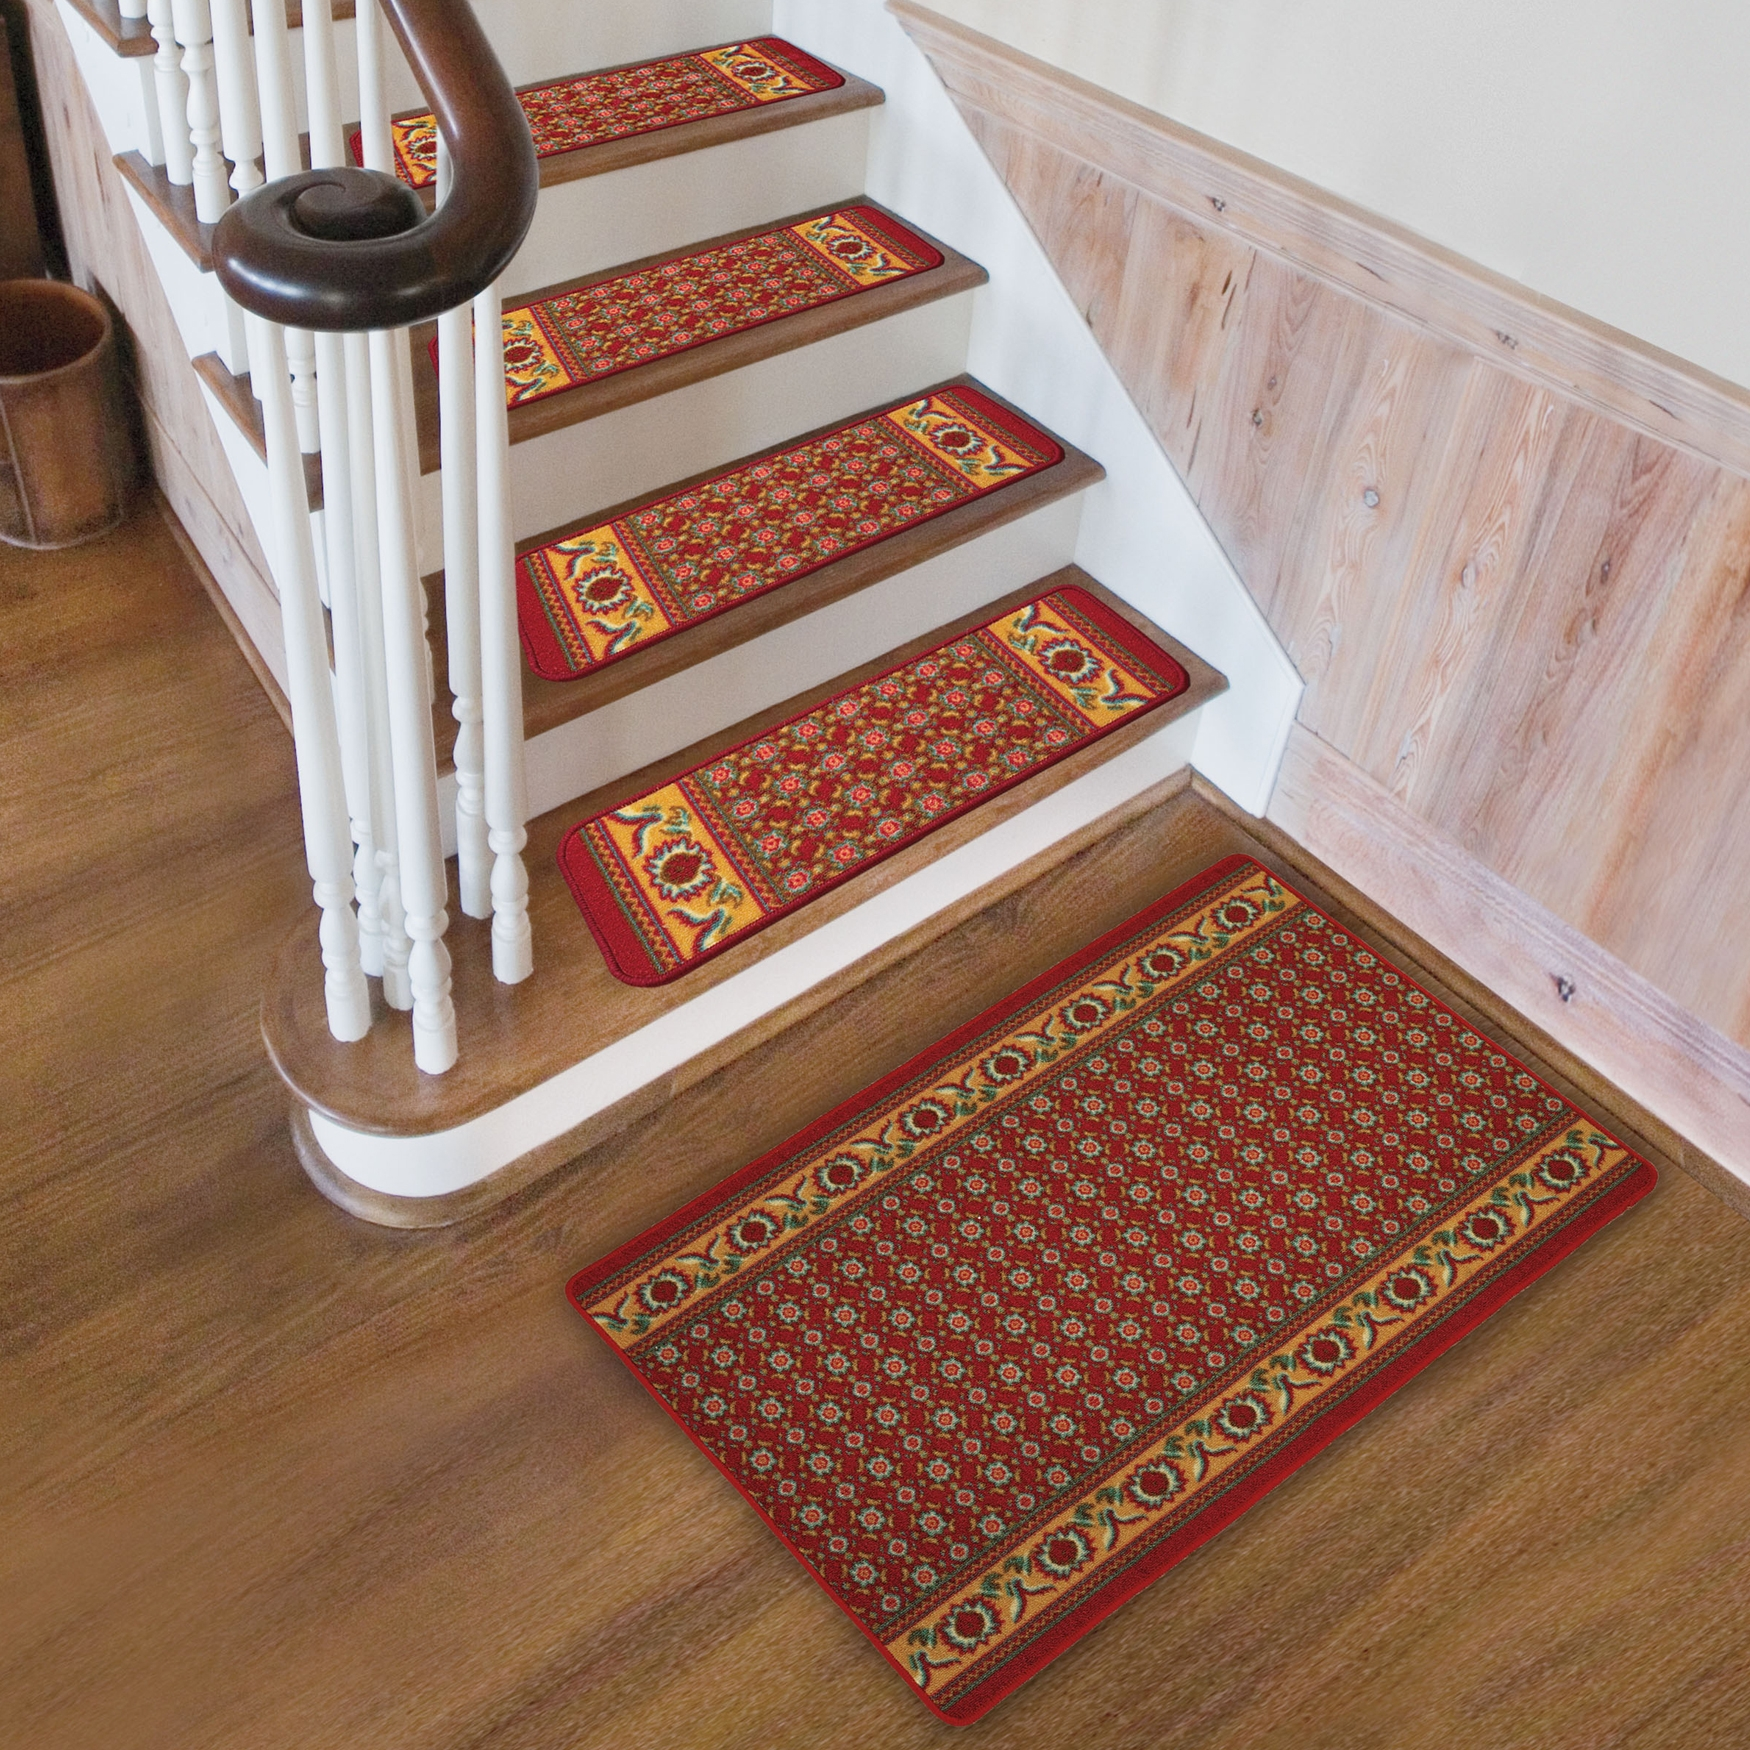 Rugs Carpet Elegant Carpet Stair Treads With Classic Pattern Throughout Carpet Treads For Stairs (Image 9 of 15)